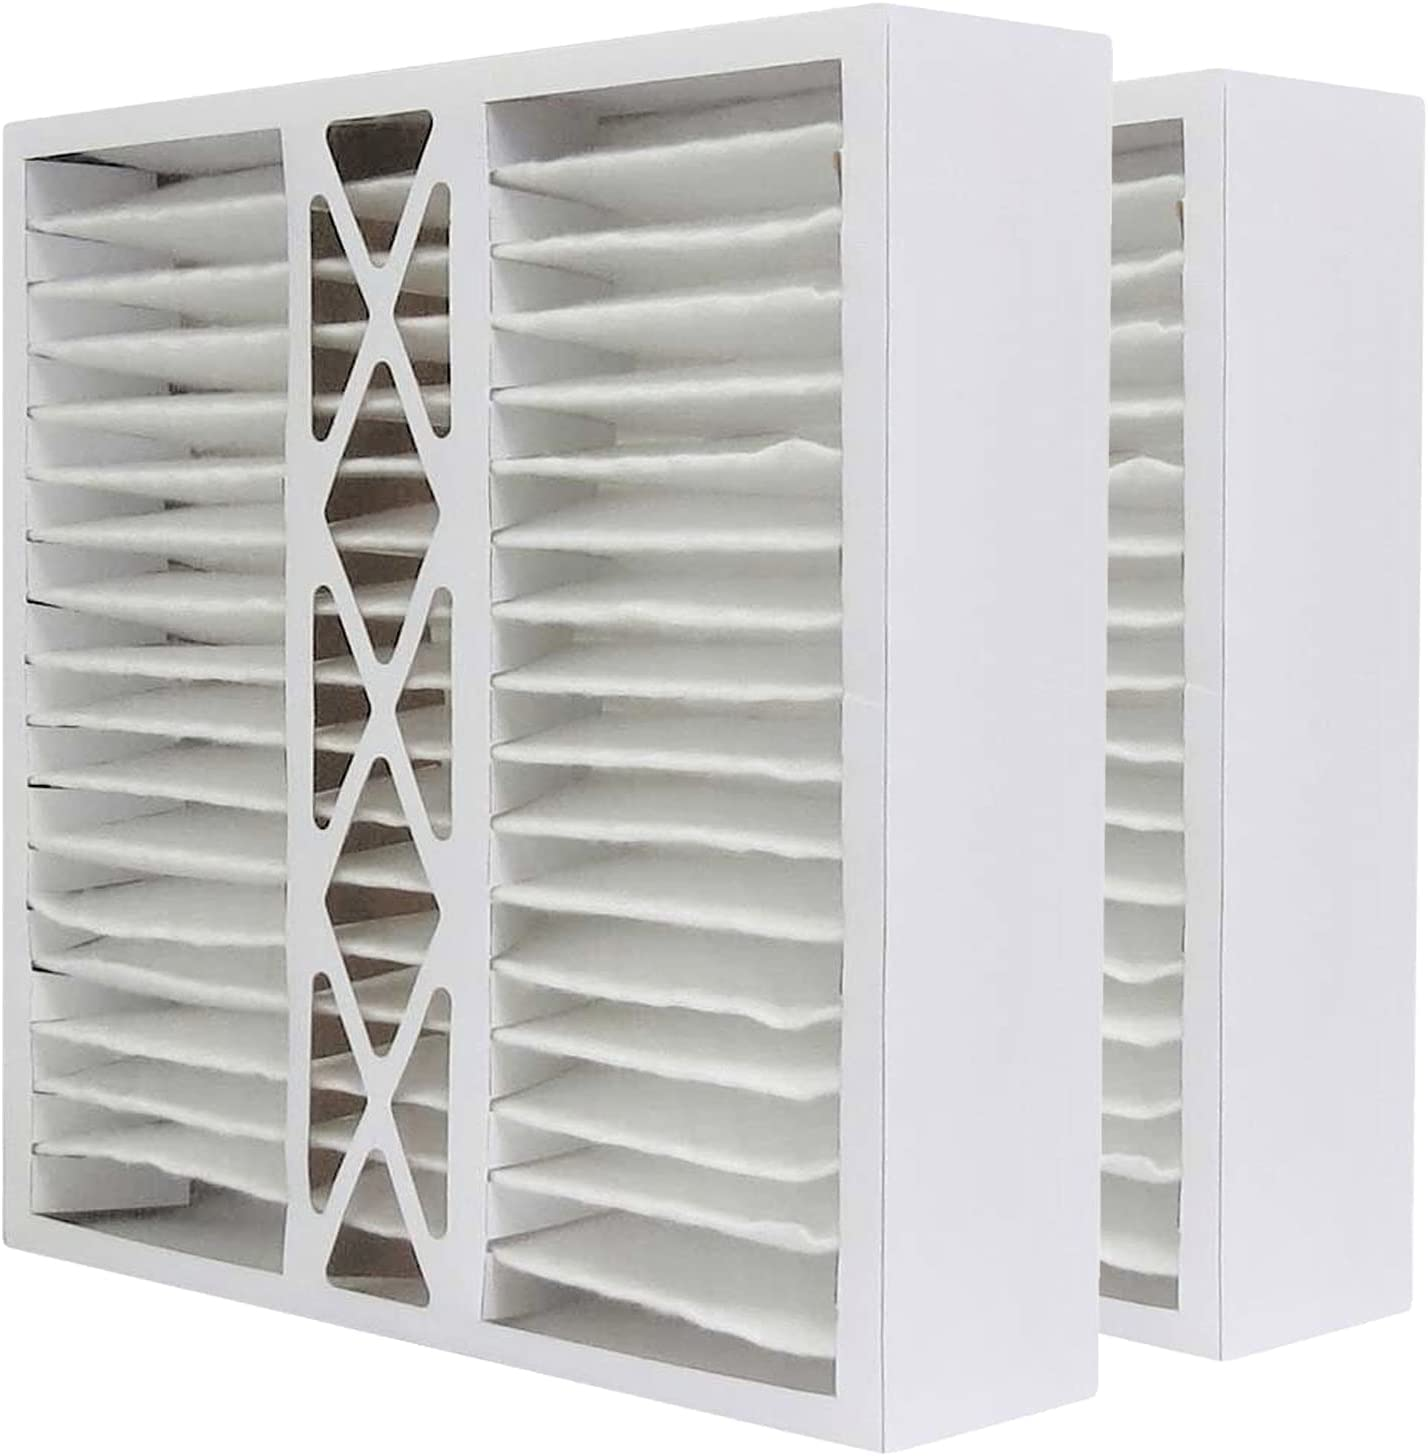 Filters Fast Compatible Replacement Max 70% OFF for Max 41% OFF Trane 21